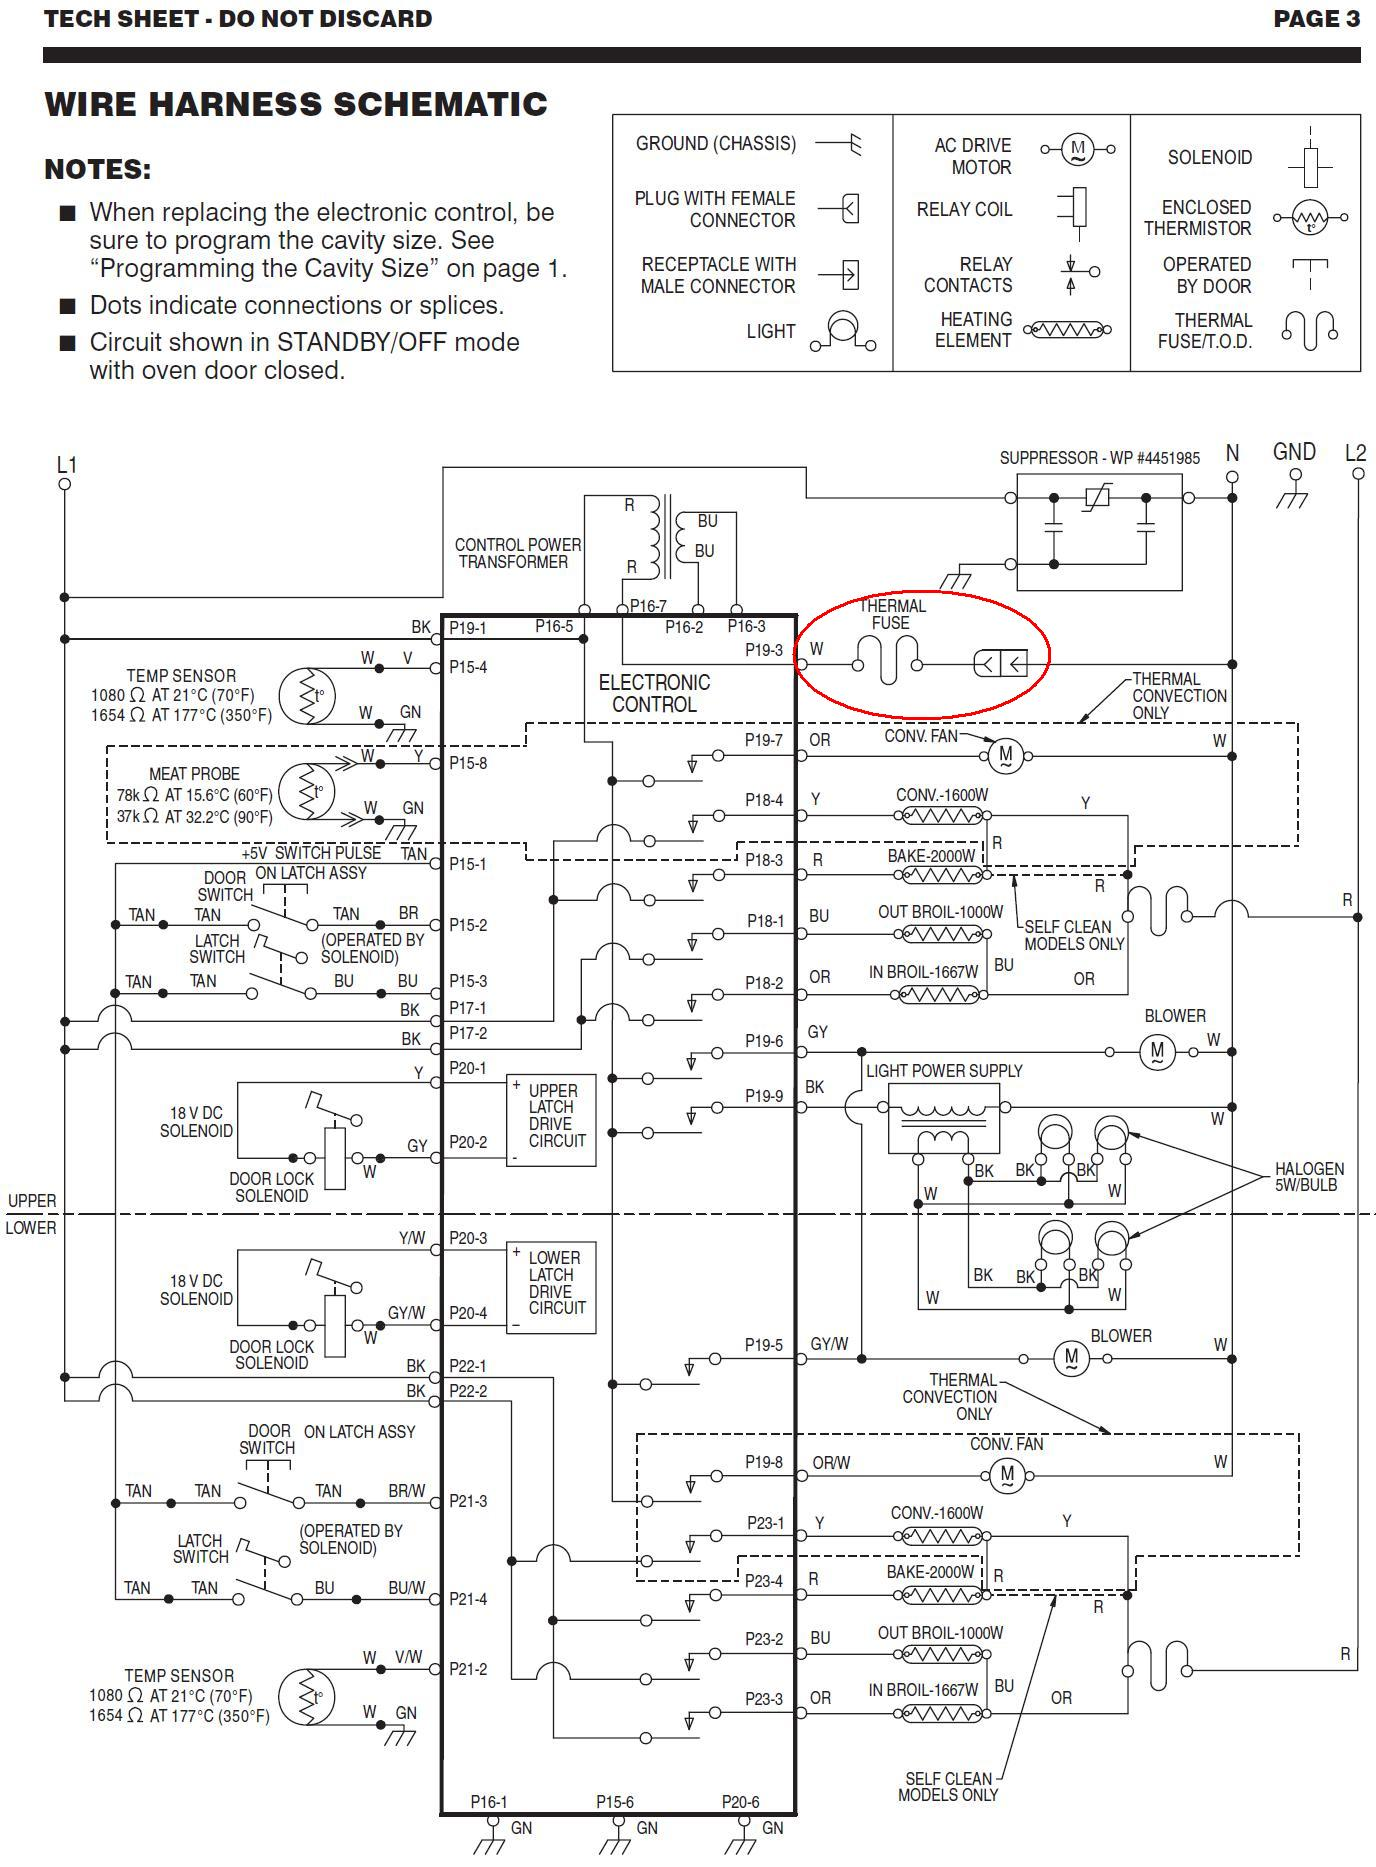 Model KEBC278KSS0 Kitchenaid double wall oven Problem started – Kitchenaid Oven Wiring Schematic